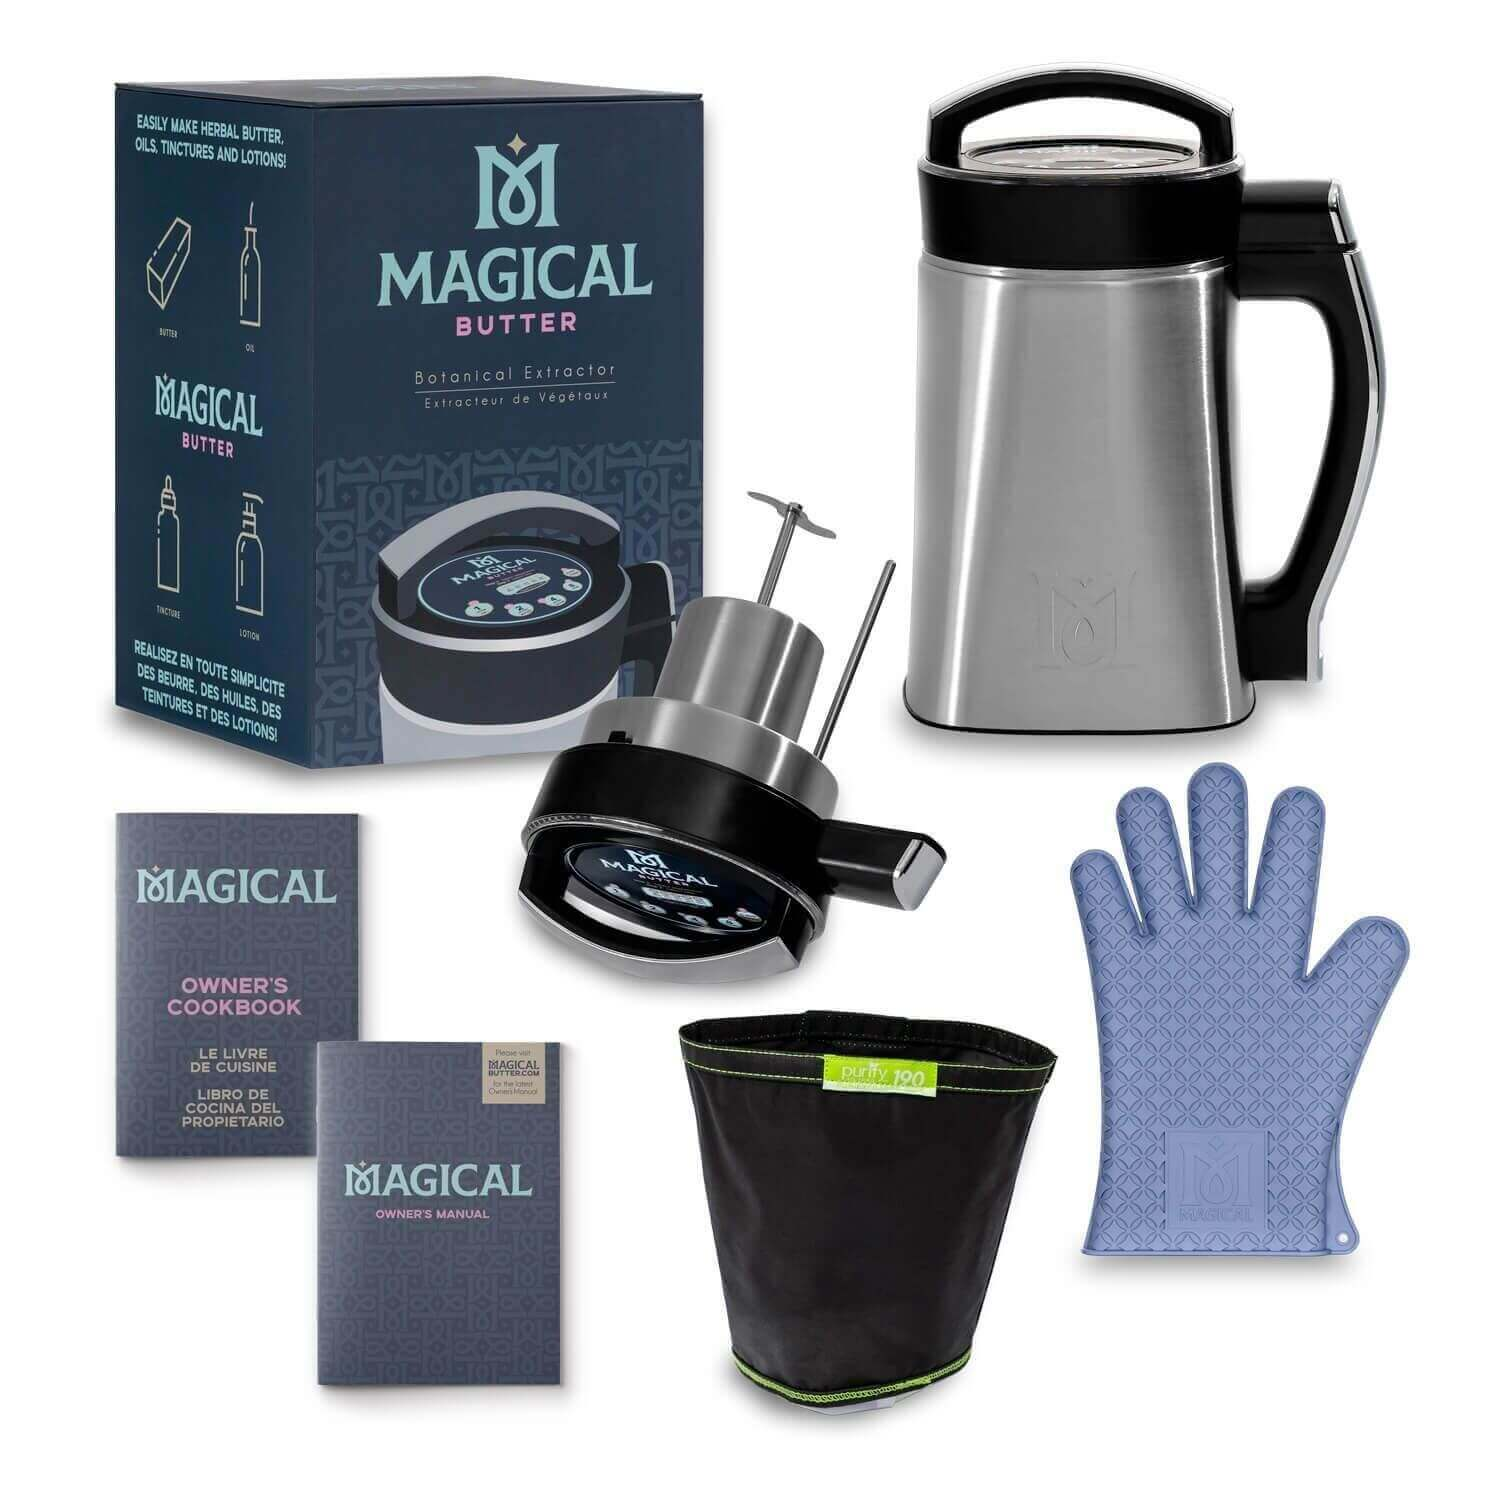 The MagicalButter infuser